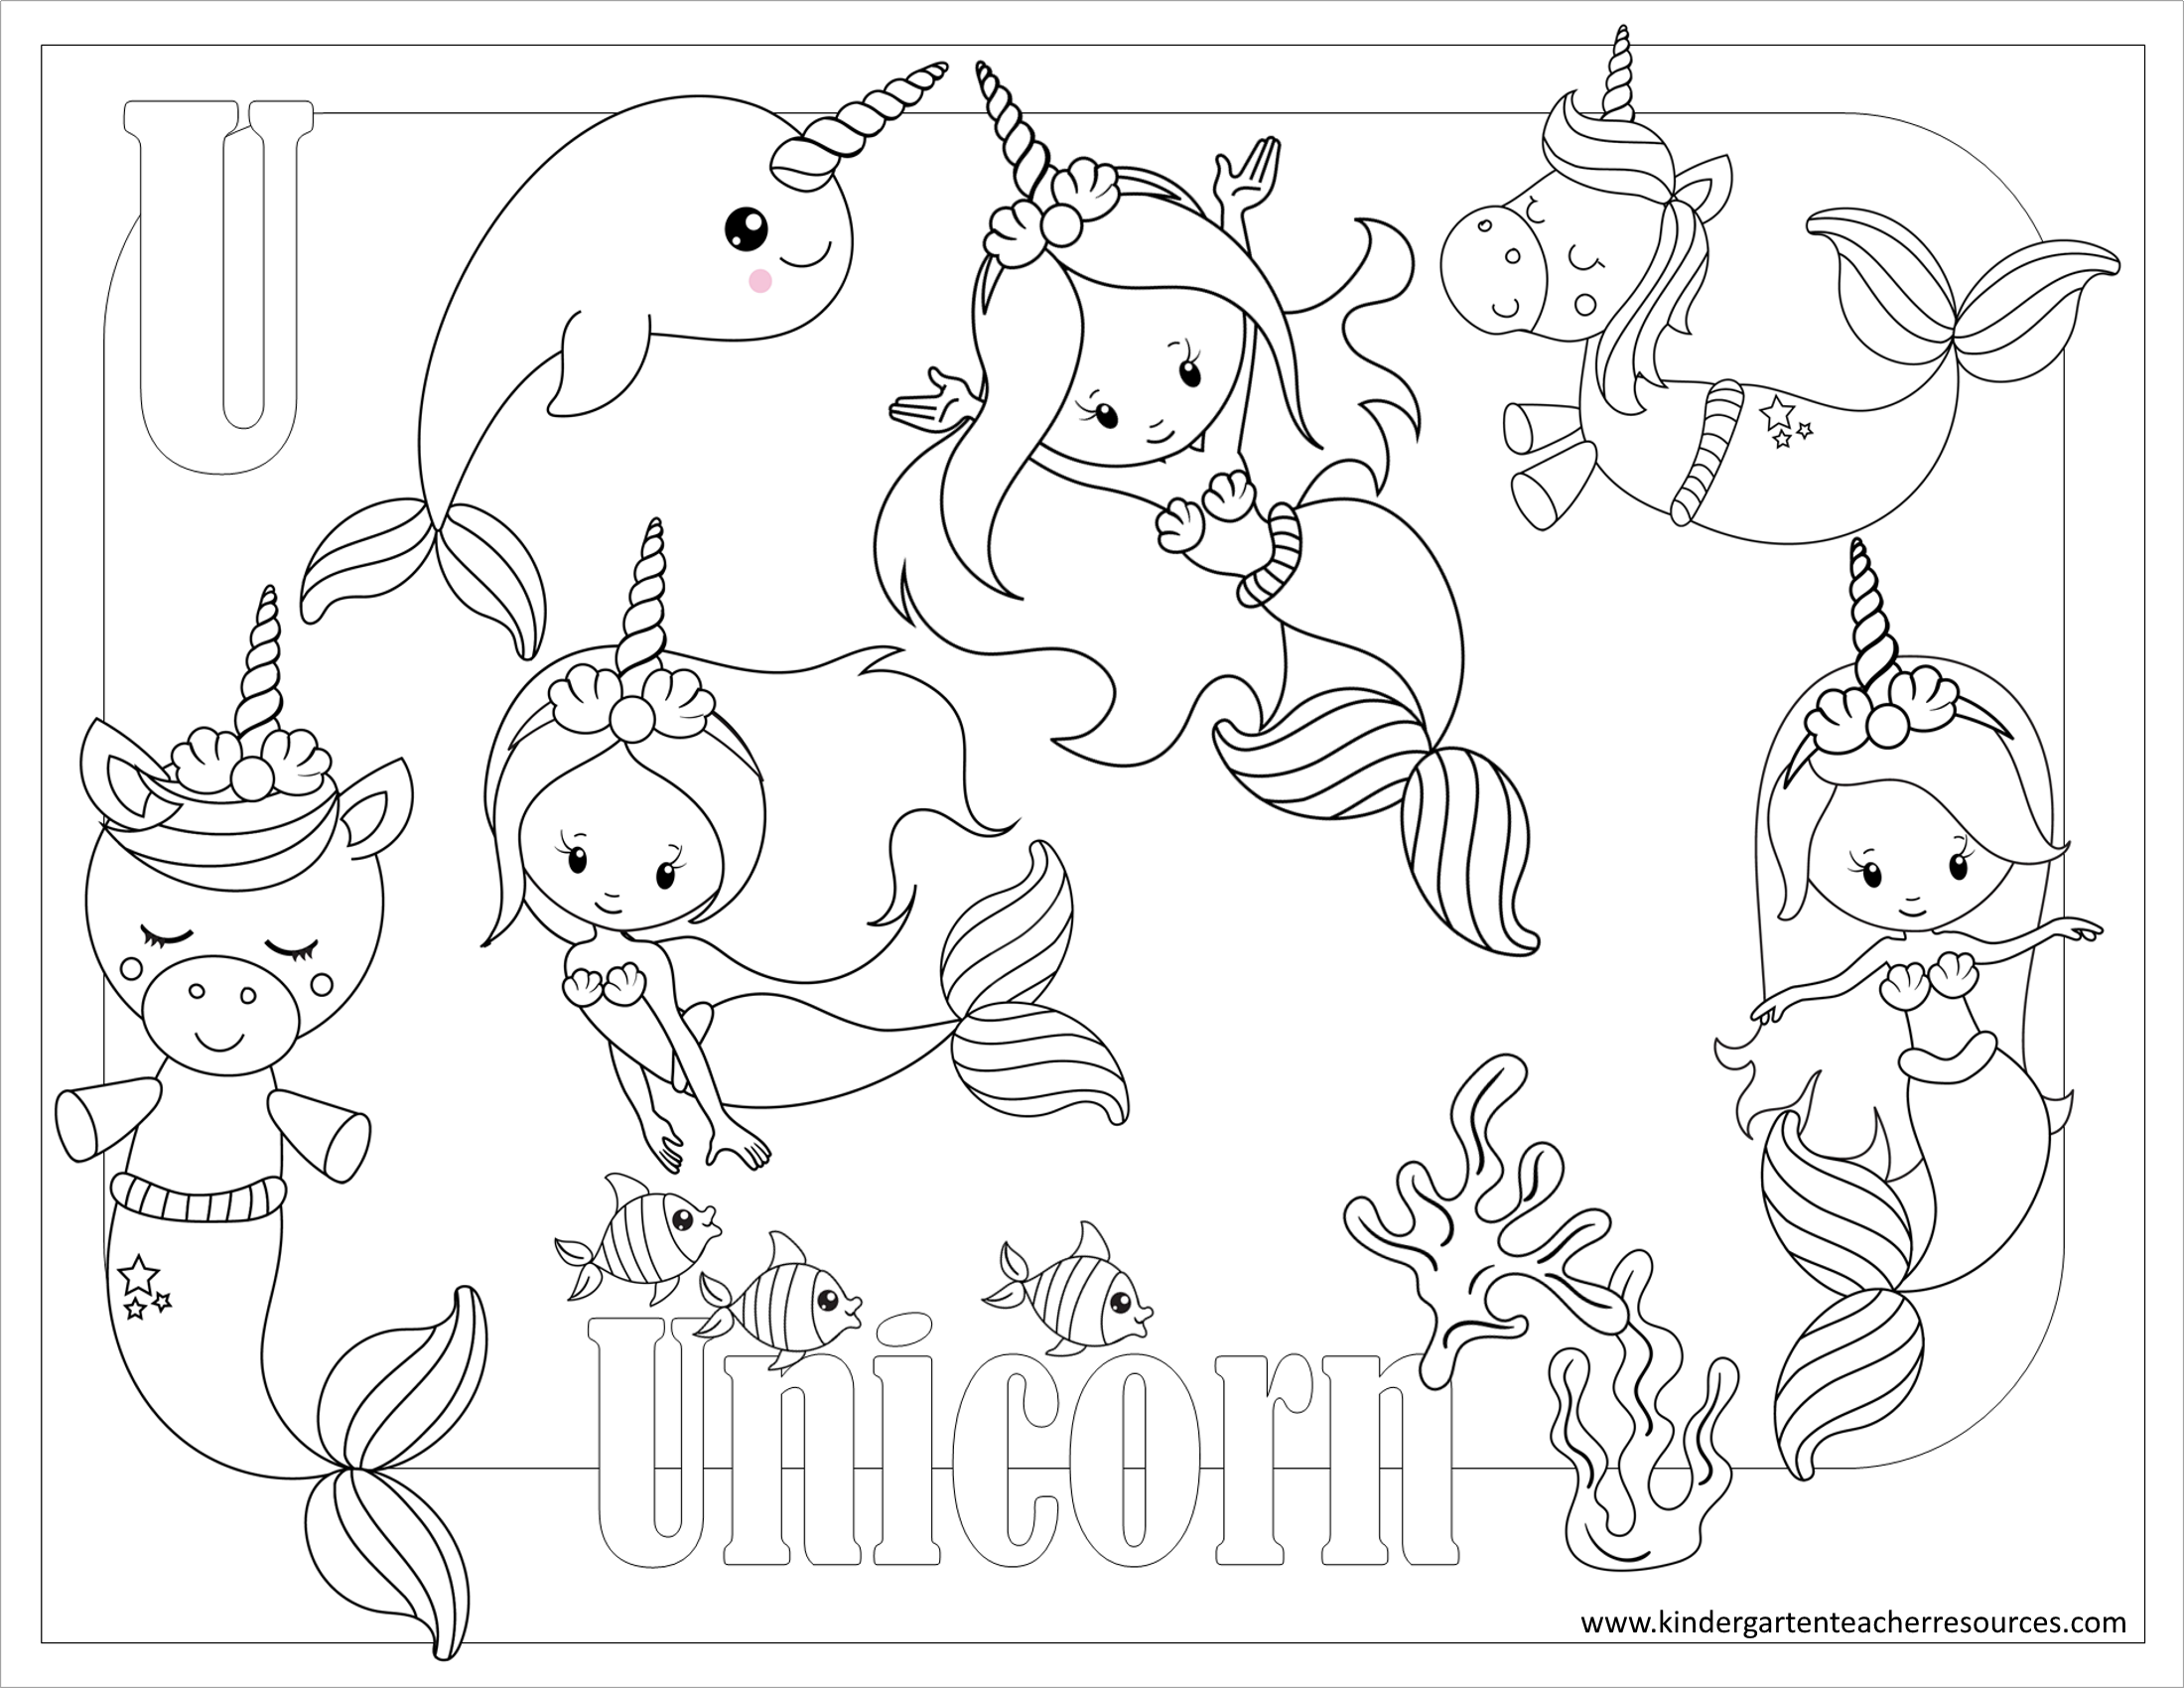 coloring page kindergarten colors coloring pages for preschool at getcoloringscom page kindergarten coloring